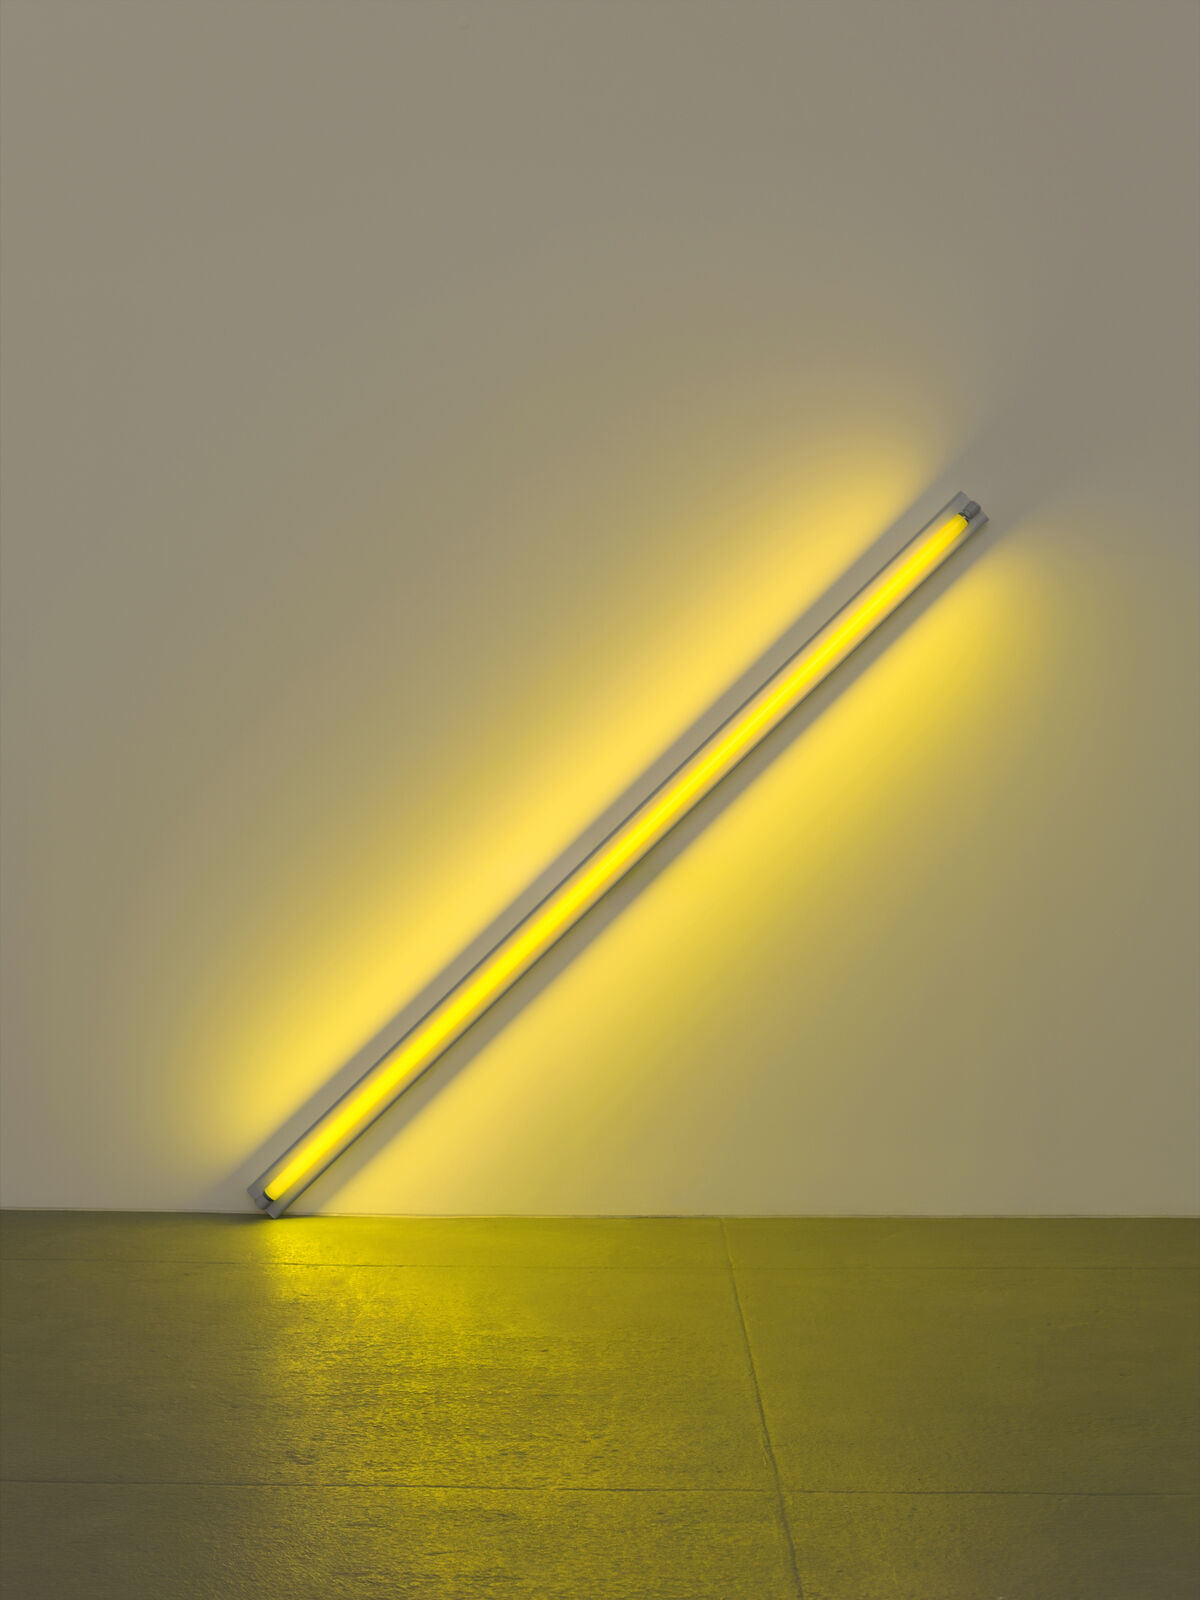 Dan Flavin, the diagonal of May 25, 1963 (to Constantin Brancusi), 1963. © Stephen Flavin/Artists Rights Society (ARS), New York. Photo by Billy Jim, New York. Courtesy of Dia Art Foundation, New York.